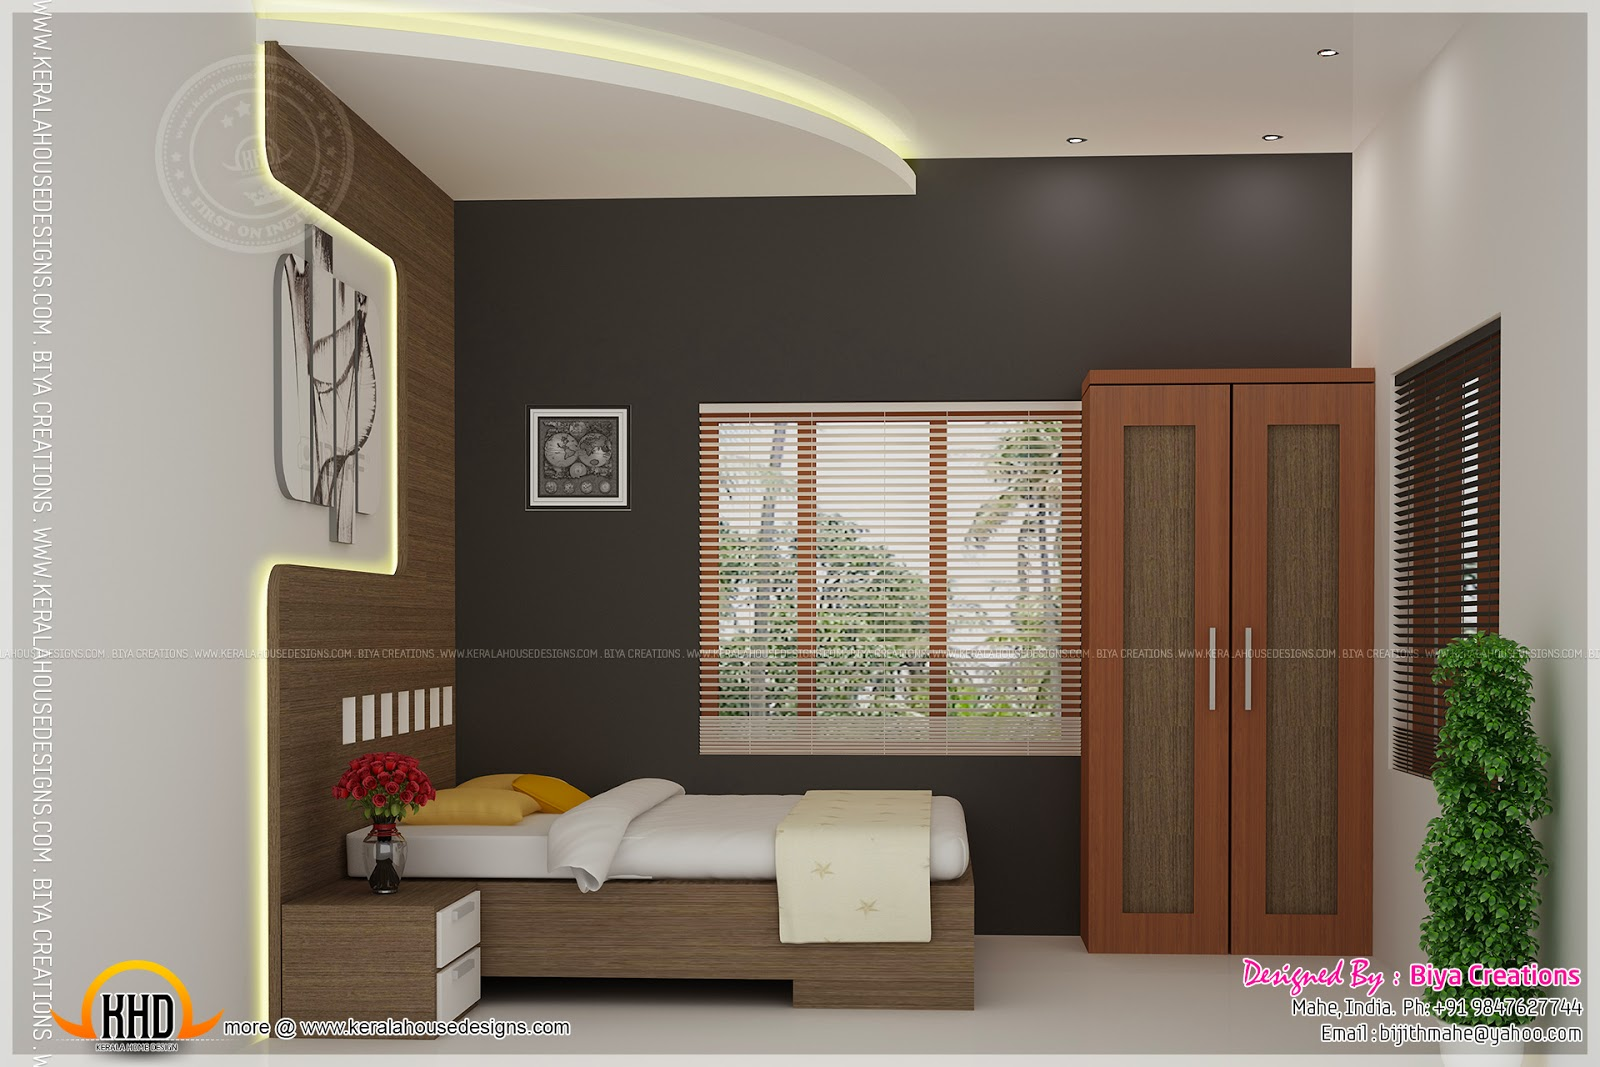 Bedroom kid bedroom and kitchen interior kerala home for Beautiful interior designs for small houses